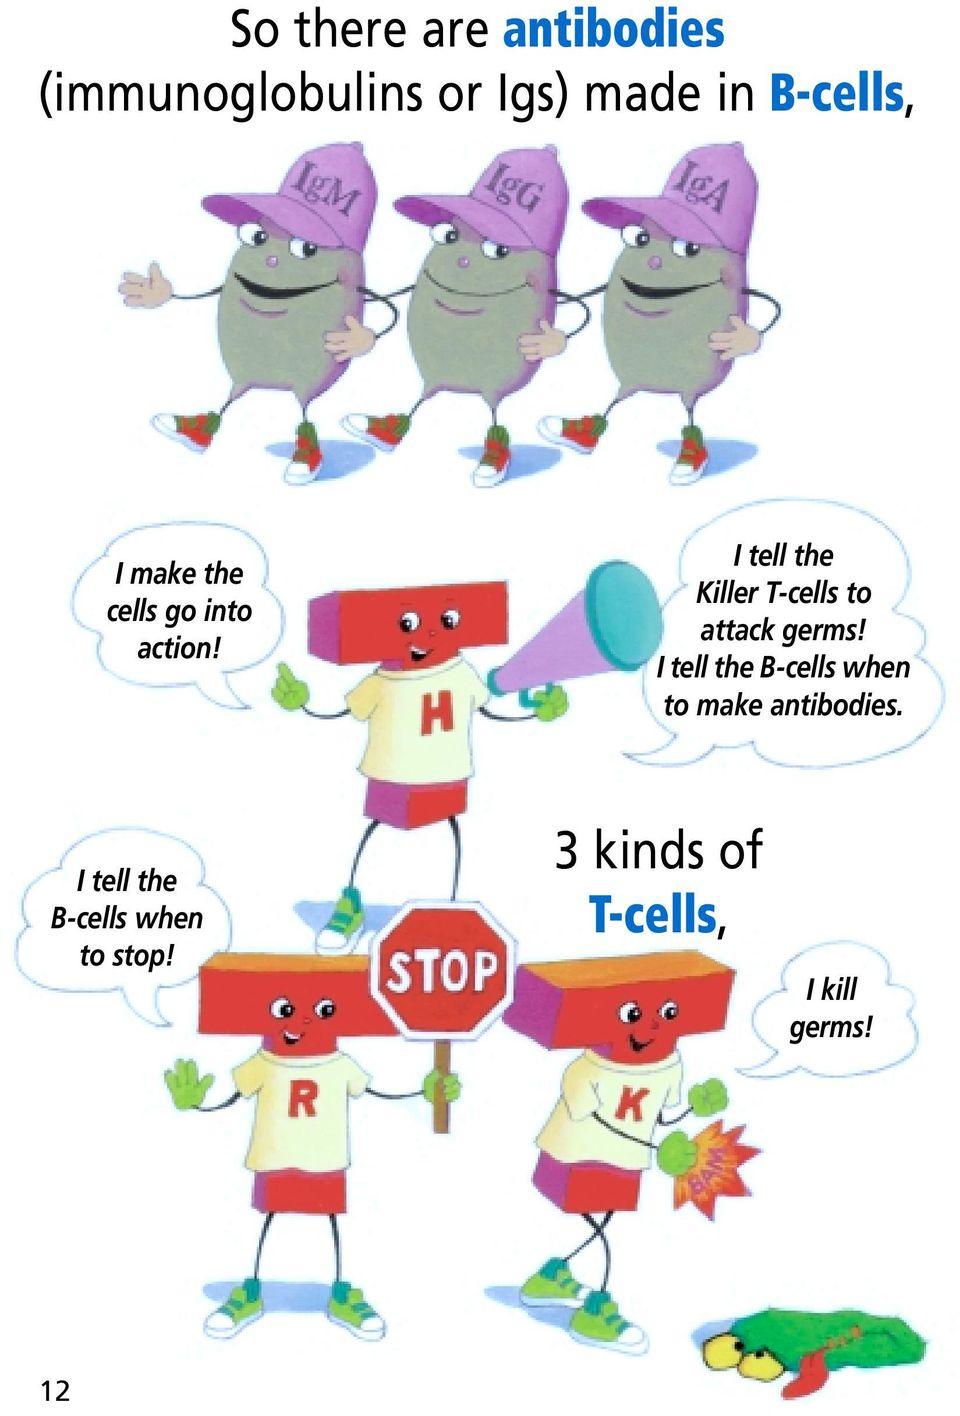 I tell the Killer T-cells to attack germs!